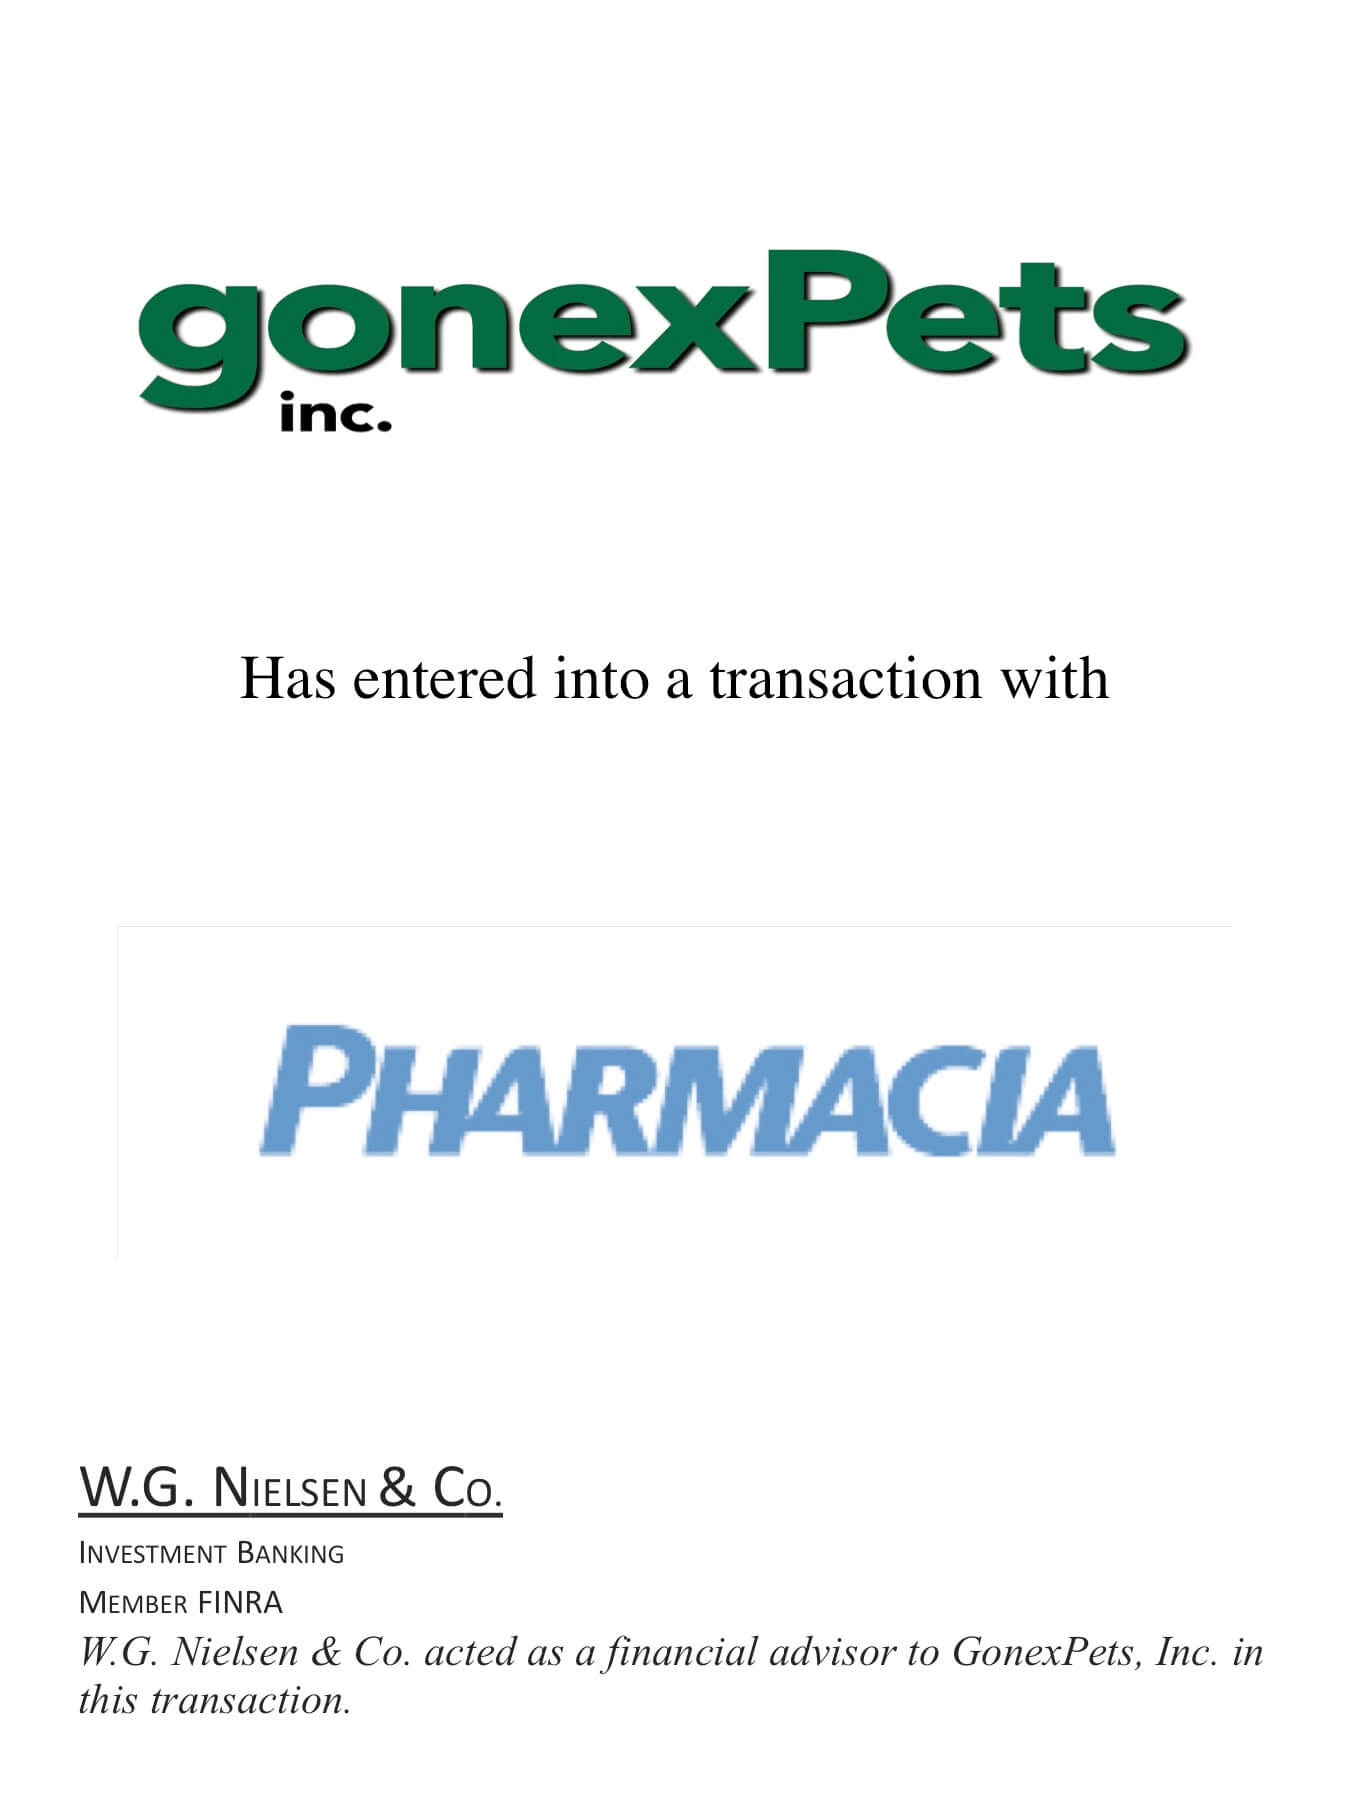 gonex pets investment banking transaction